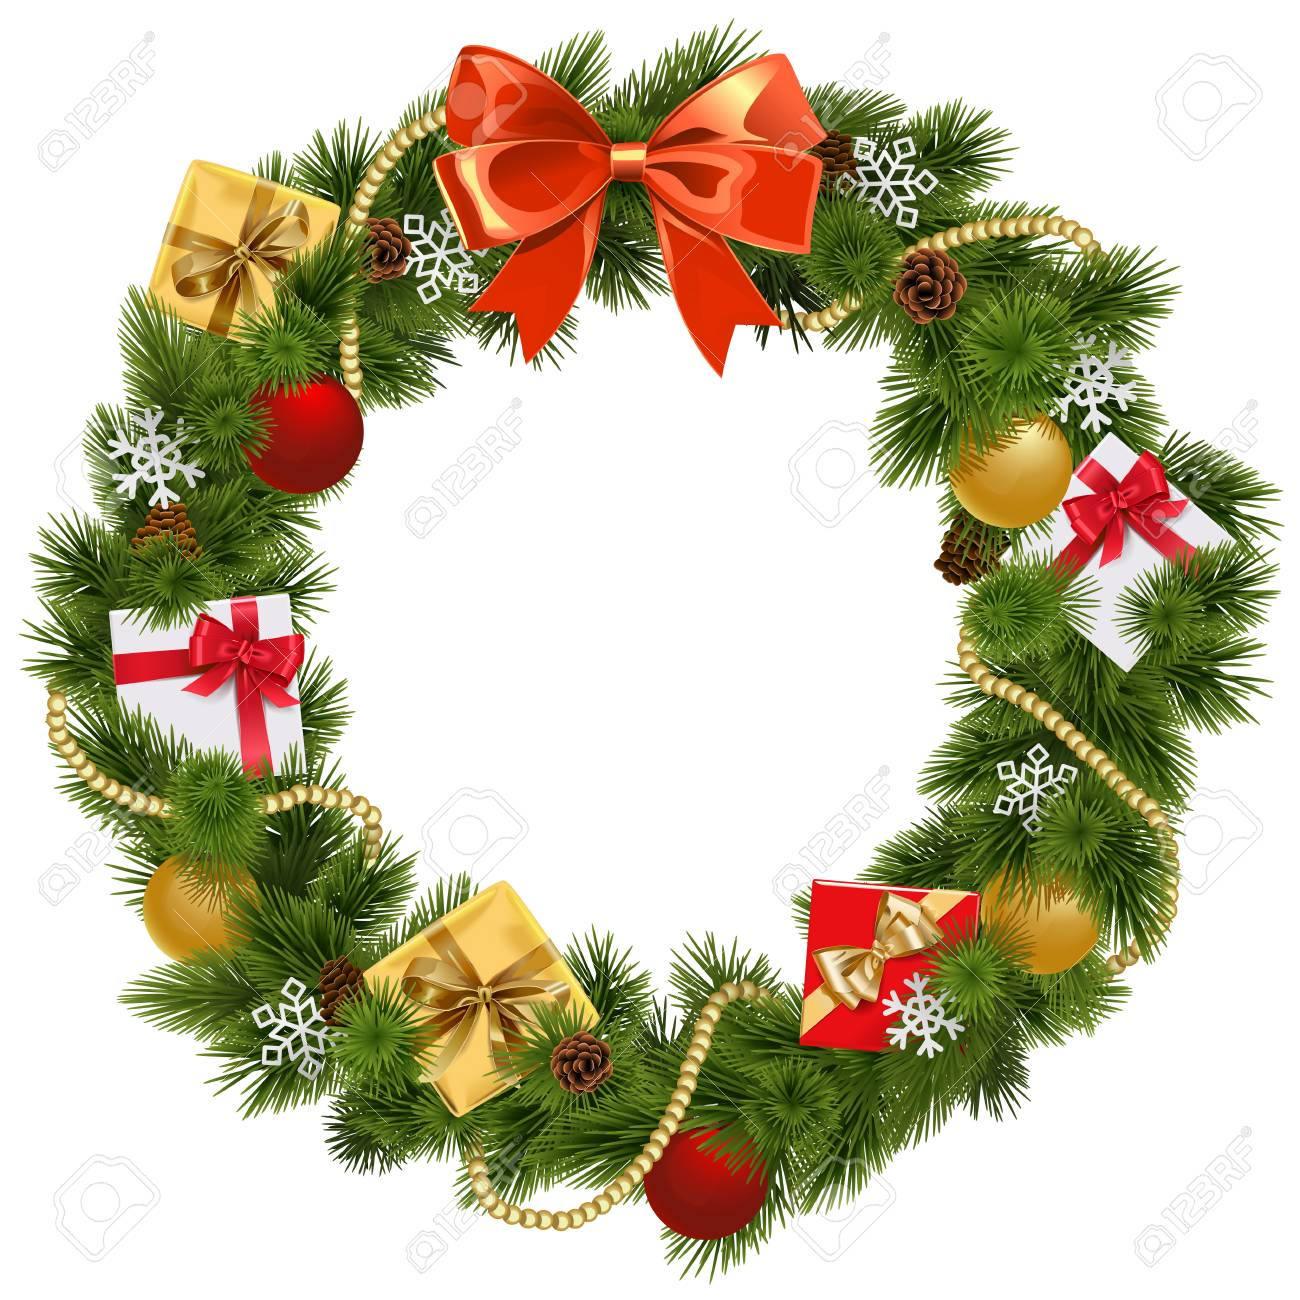 41,363 Christmas Wreath Stock Illustrations, Cliparts And Royalty ...